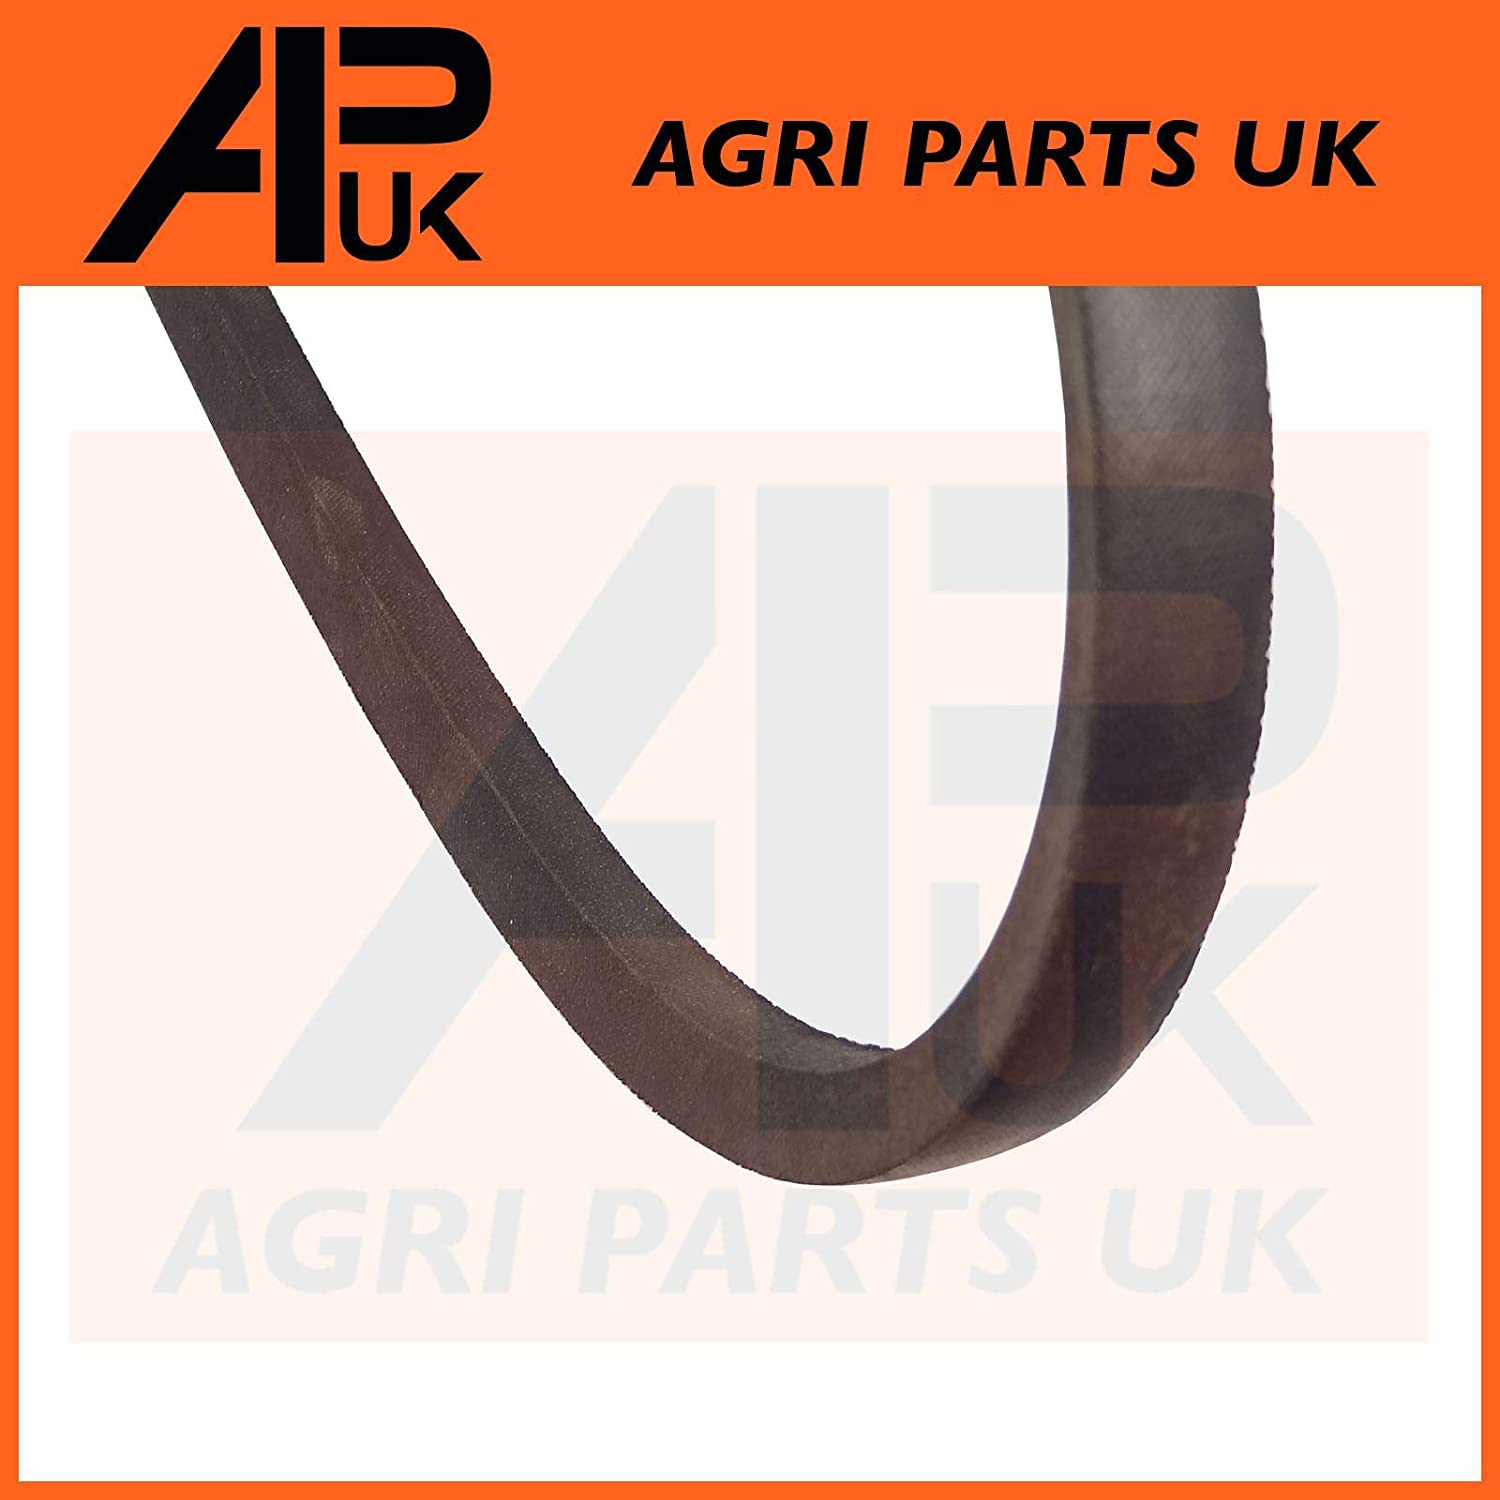 APUK International Harvester IH 250 275 276 354 374 384 414 434 444 Tractor Fan belt